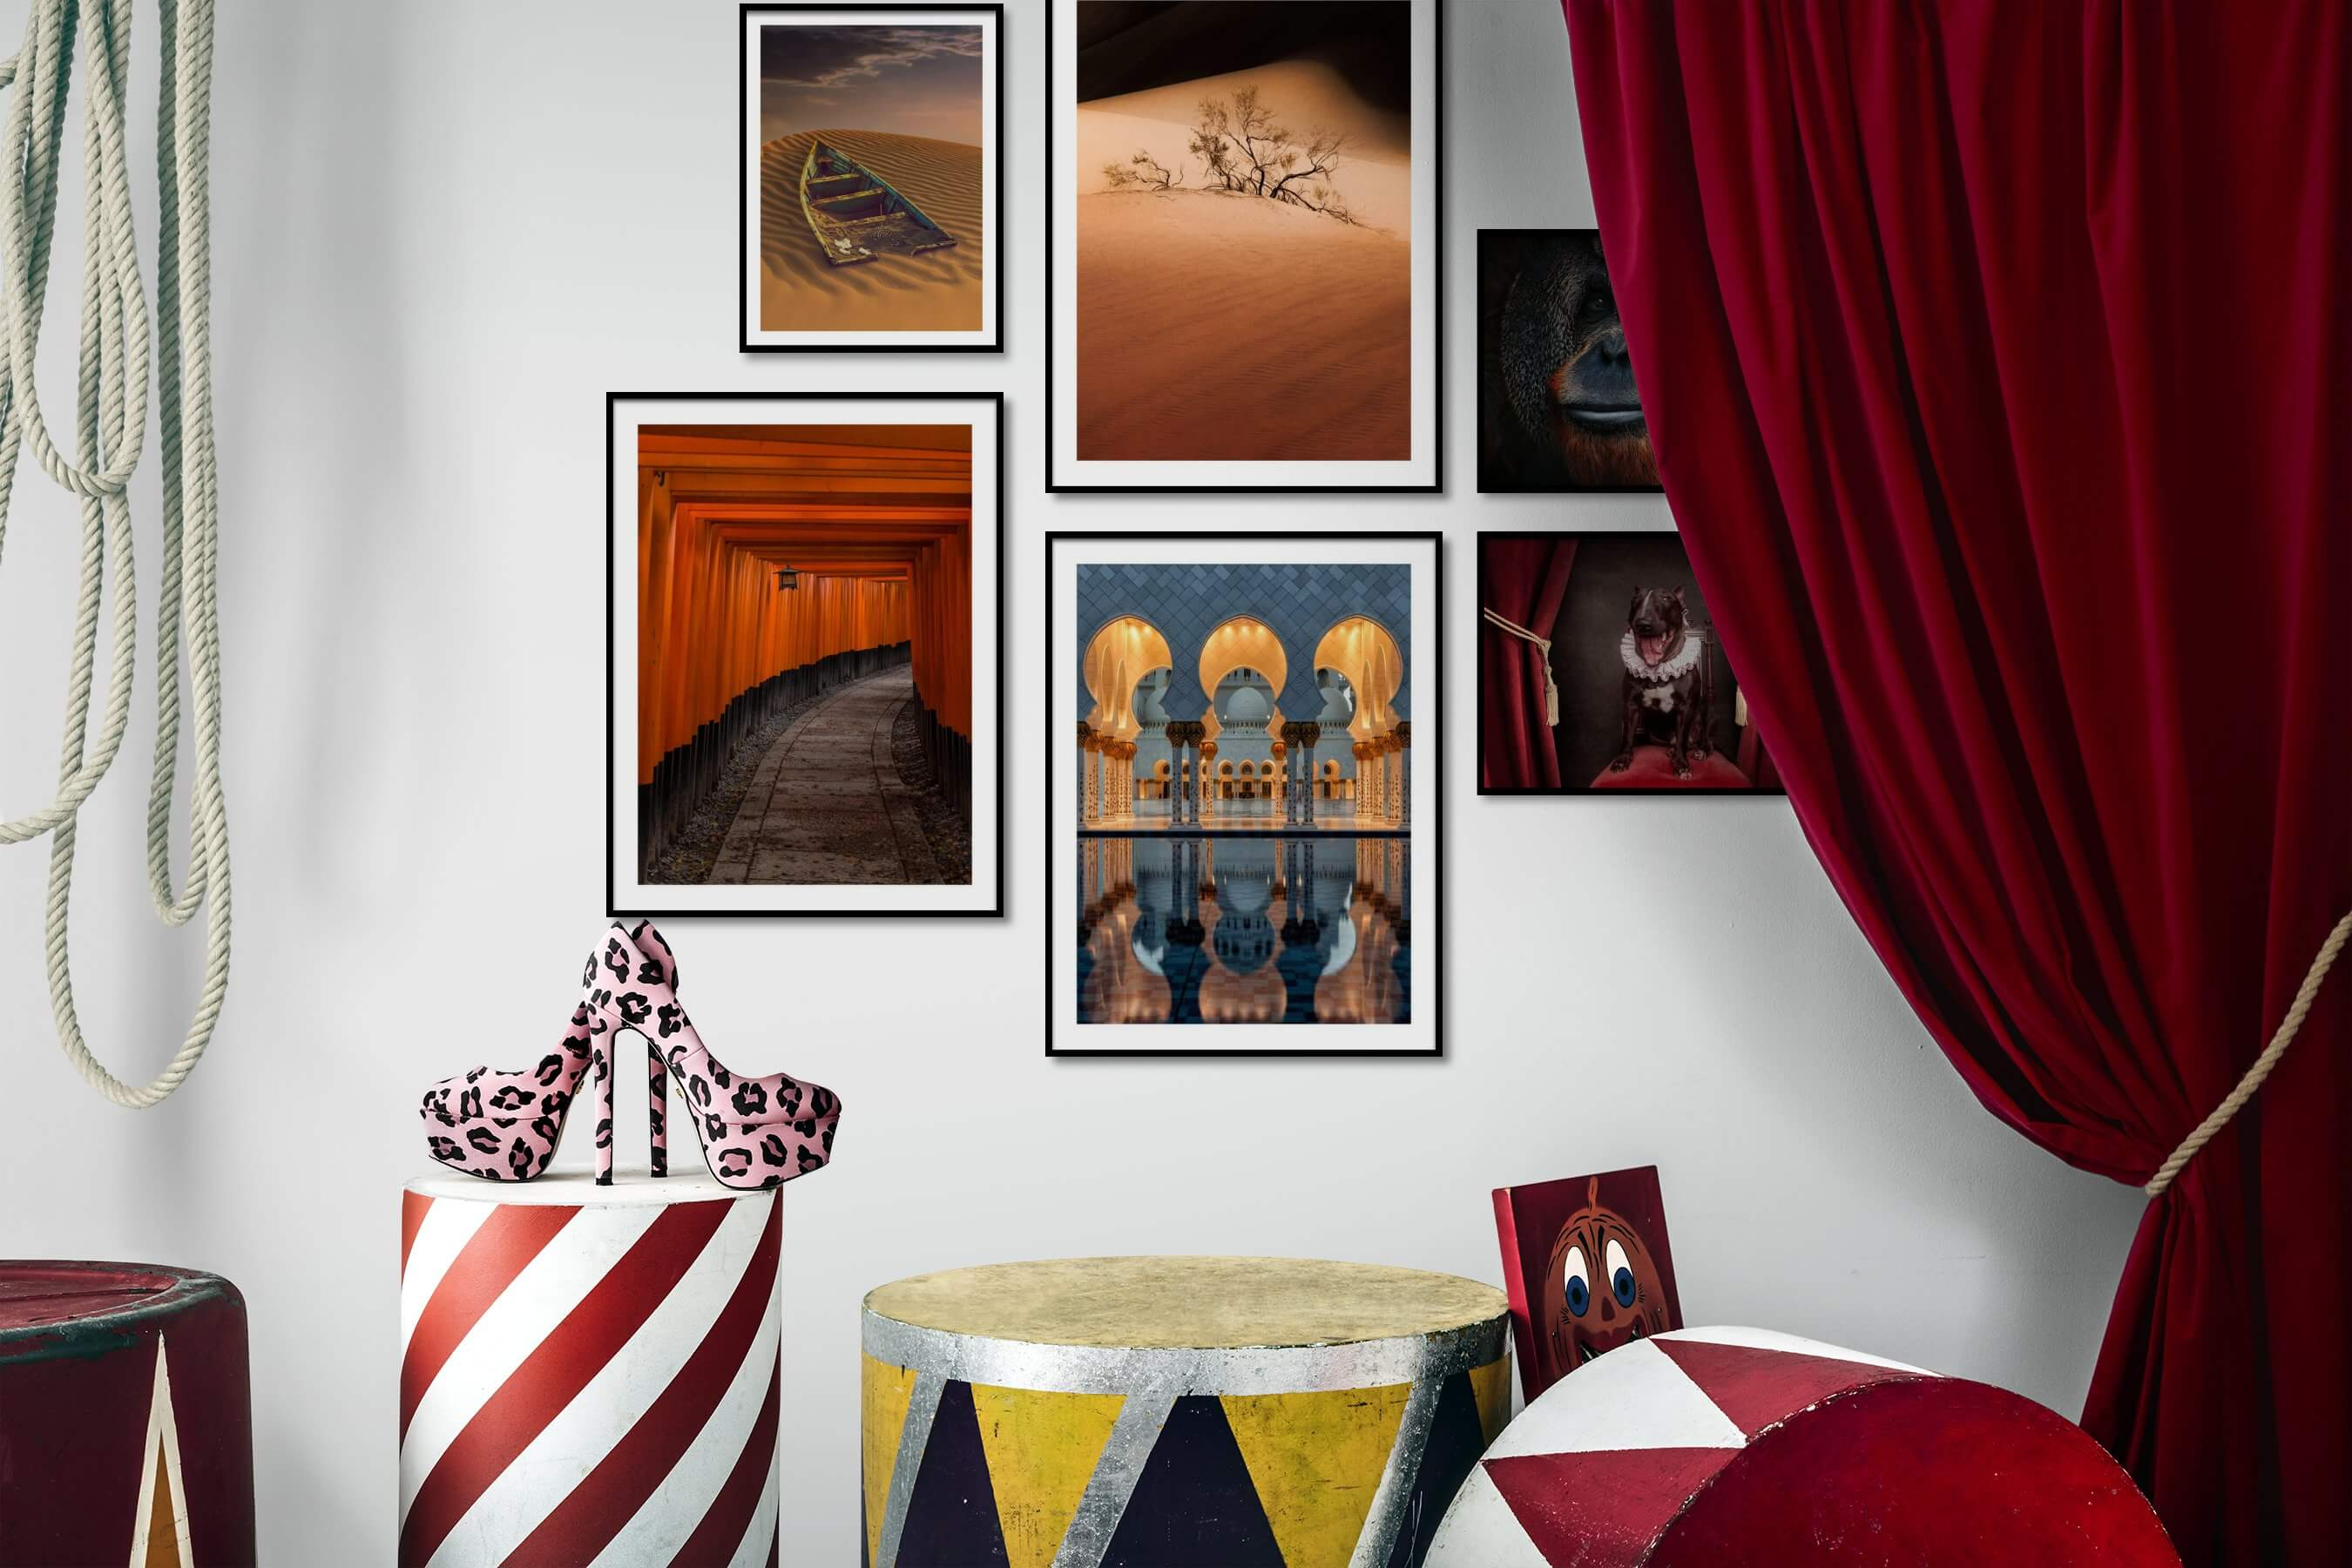 Gallery wall idea with six framed pictures arranged on a wall depicting Nature, For the Moderate, Animals, and Vintage